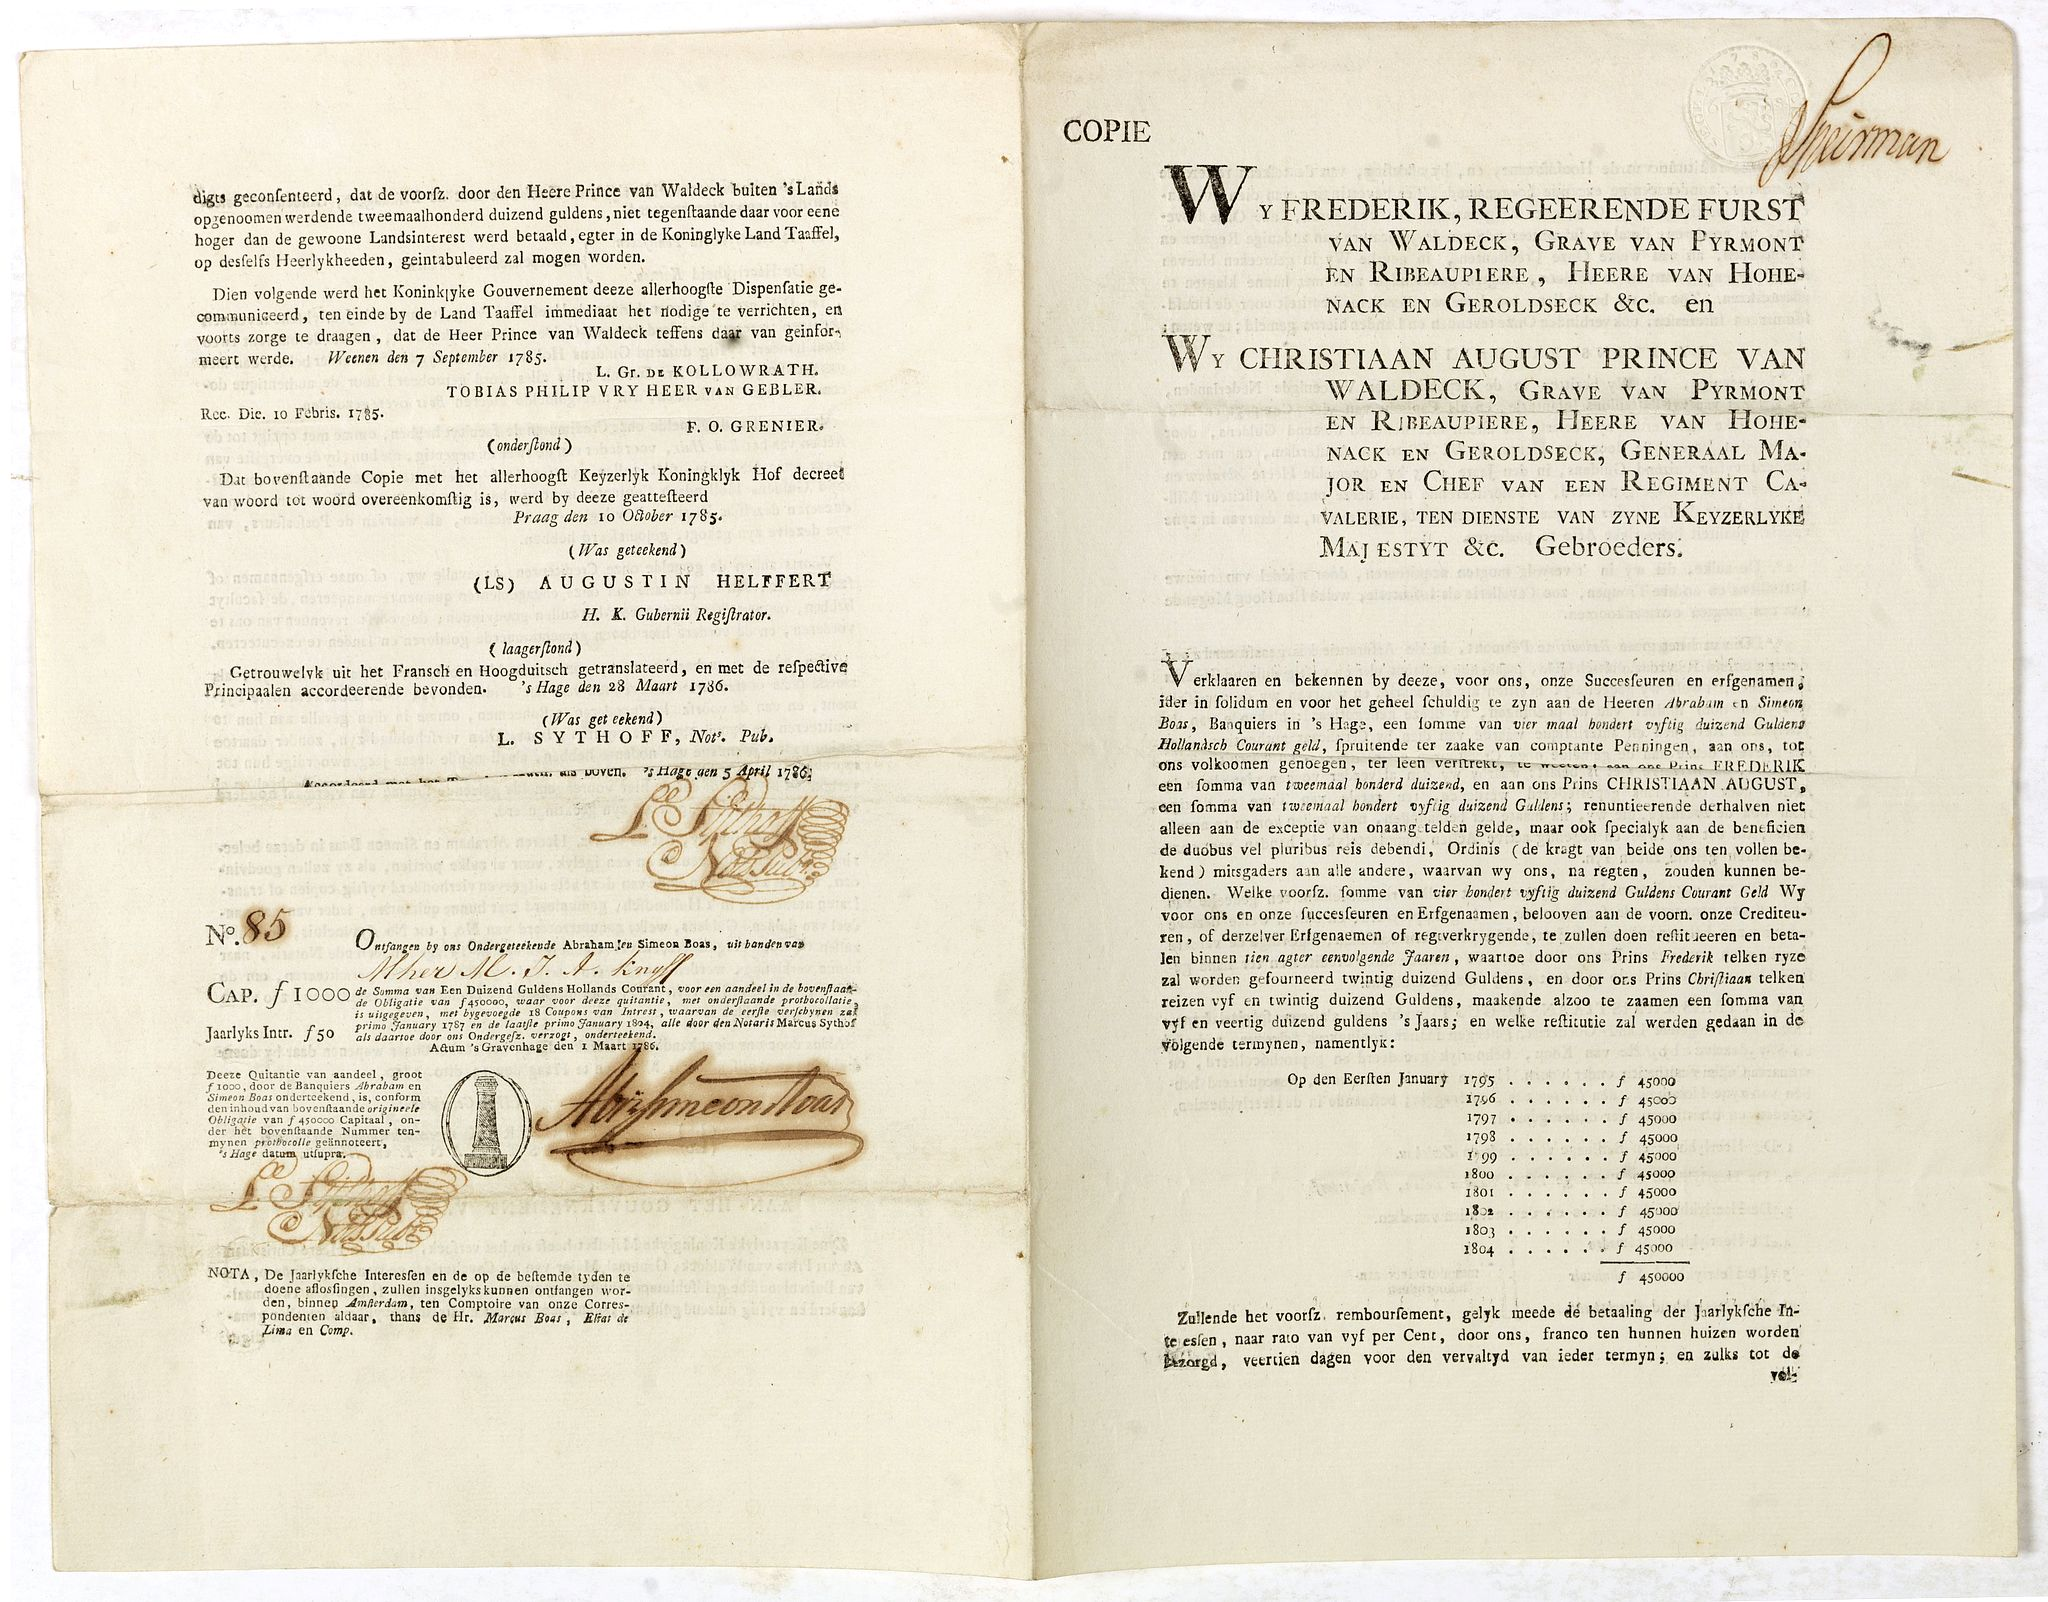 BOAS, A. / S.,  Bond and 9 coupons # 85 against a one year interest of 1000 Dutch Florins by Frederik ruler of Waldeck., antique map, old maps